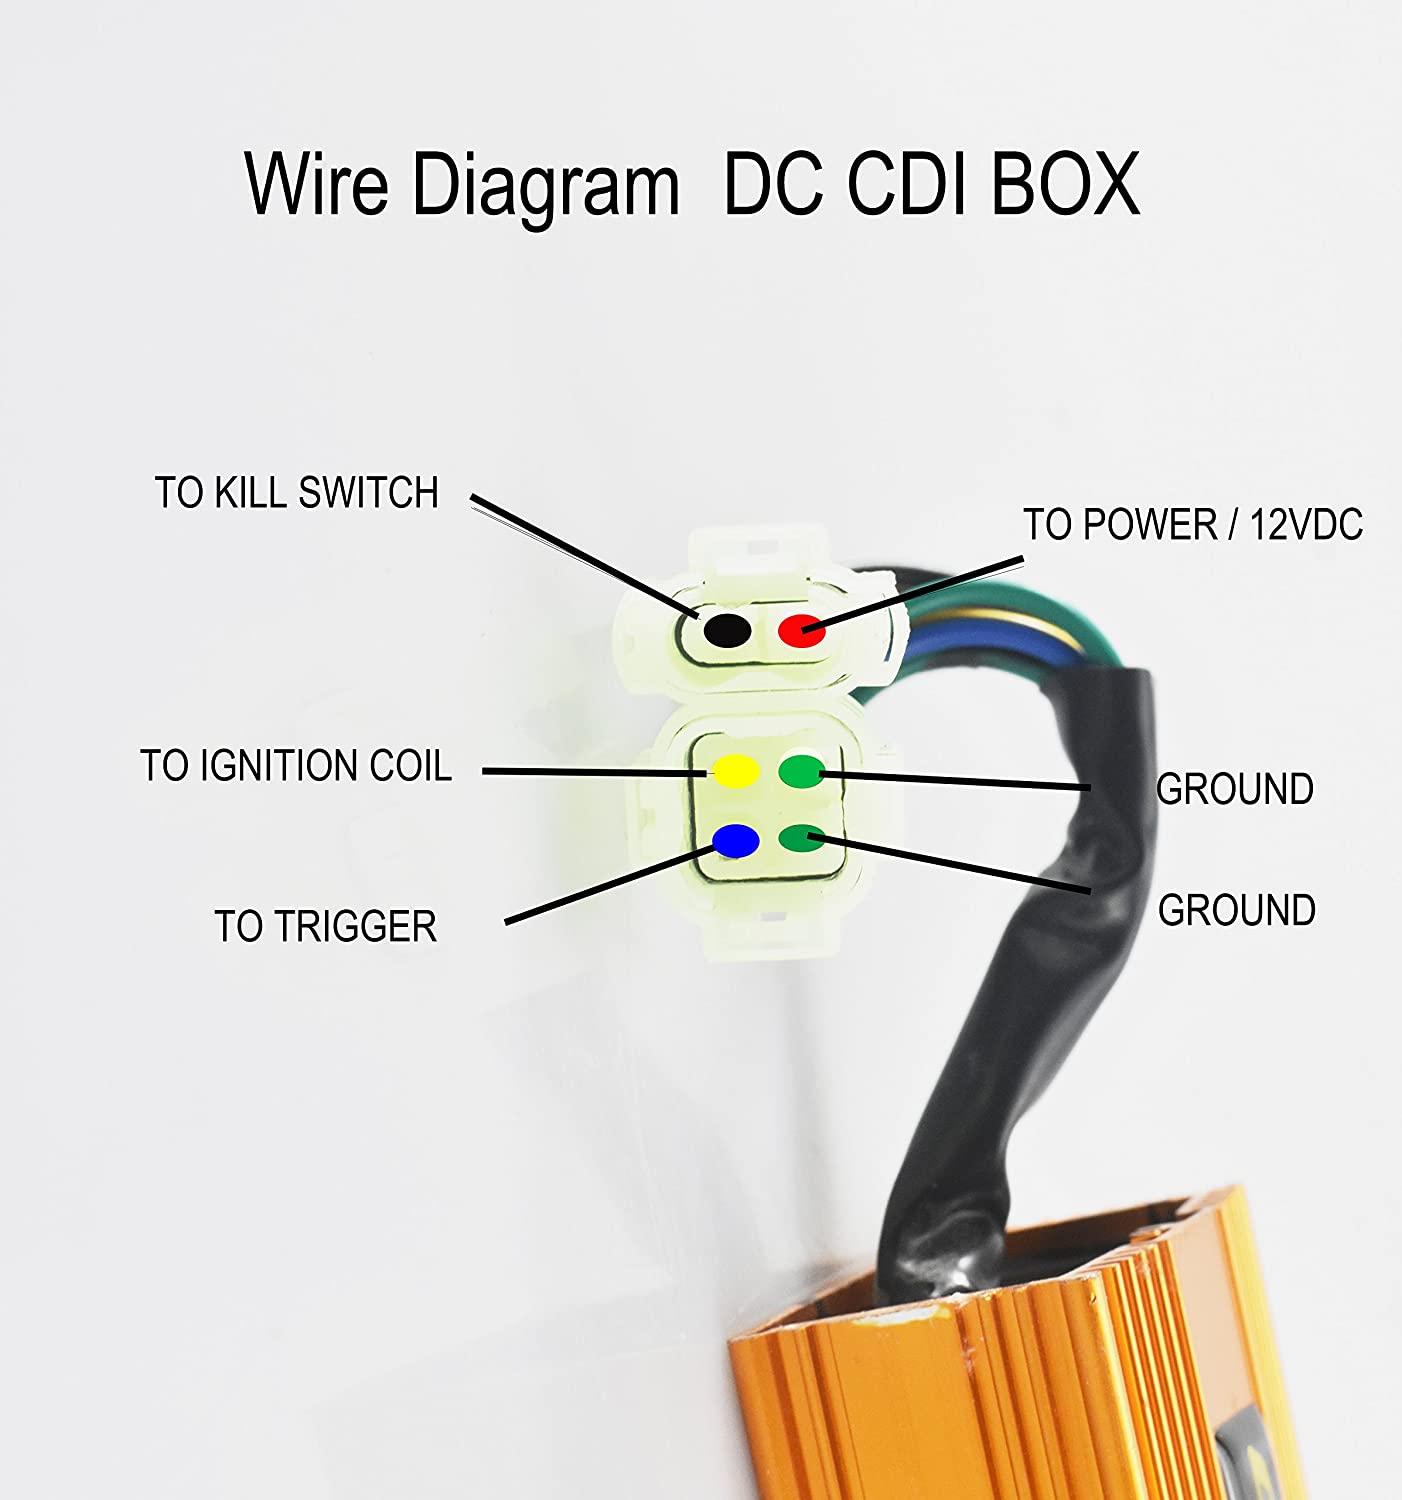 Dc 6 Wire Cdi Box Diagram - wiring diagram on the net Ac Wiring Diagram Wires on